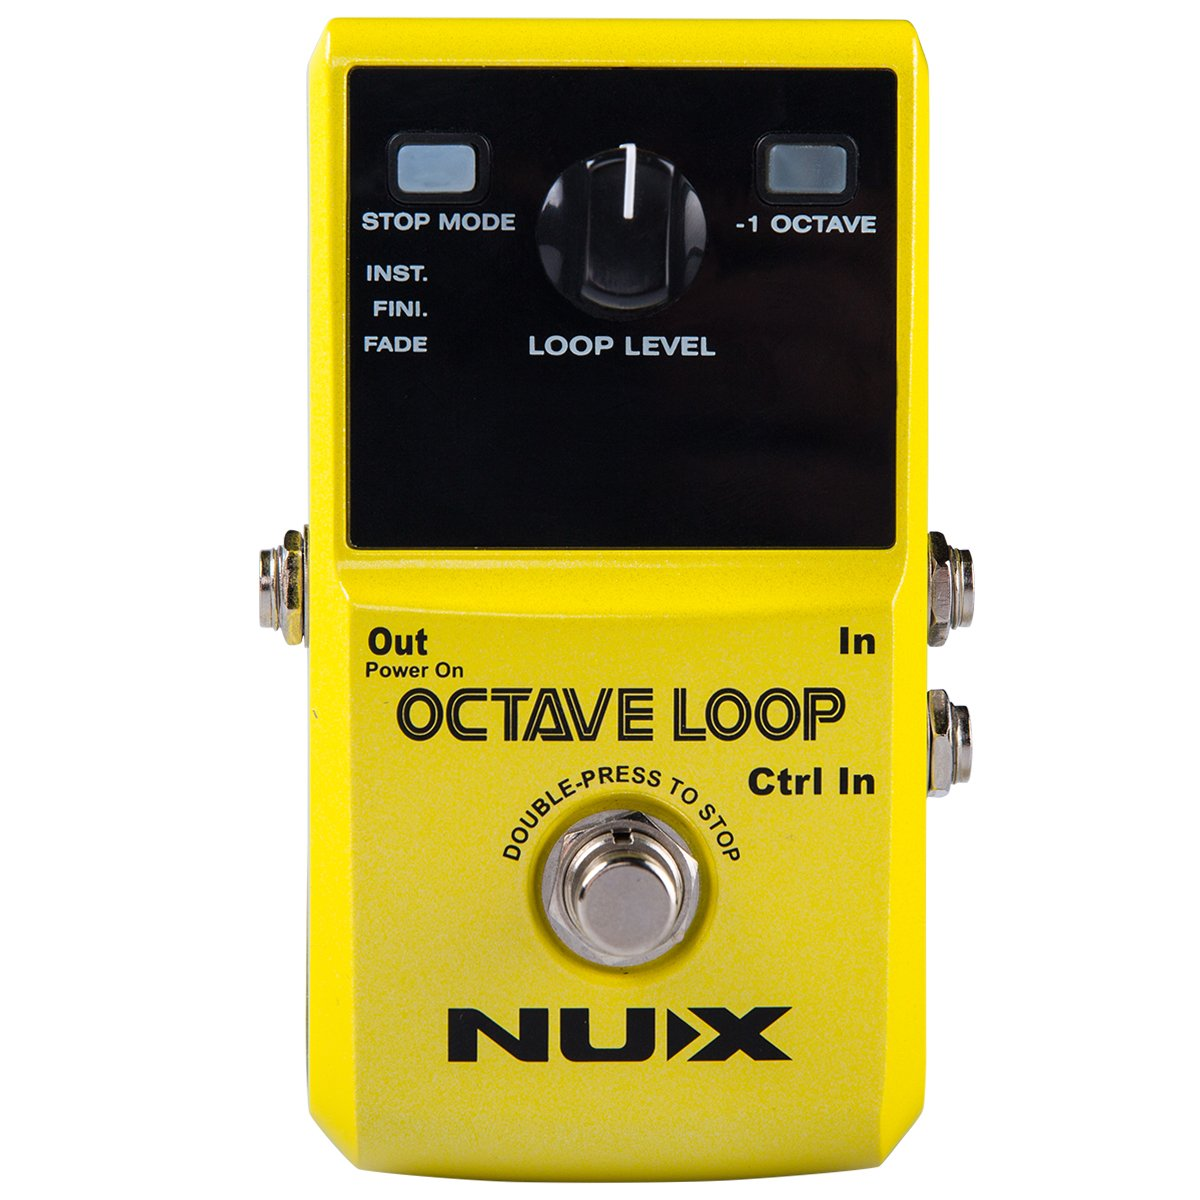 NUX Octave Loop Guitar pedal Loop Station with Octave Effect 5 minutes Looping Time